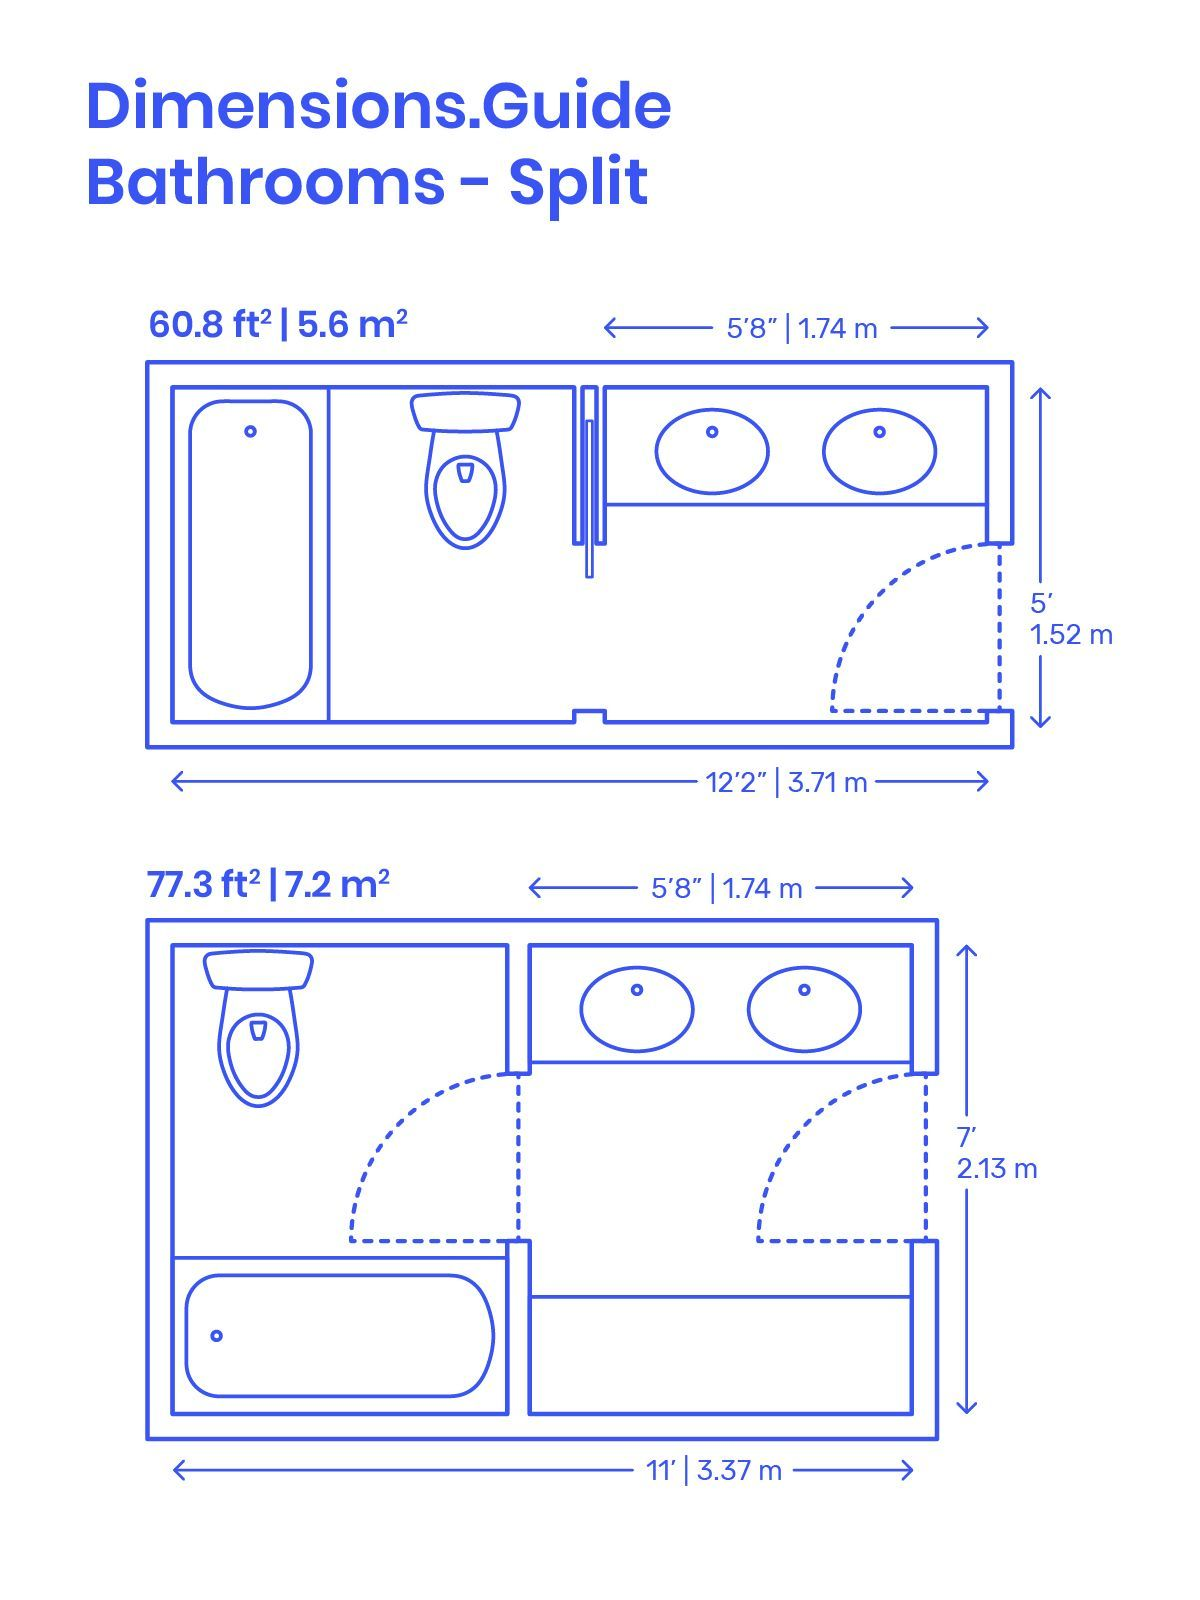 Split Bathrooms Are Designed To Further Separate Bathroom Uses Into A Primary Sink And Entry Area And A Bathroom Dimensions Bathroom Floor Plans Bathroom Plans Bathroom design size 5